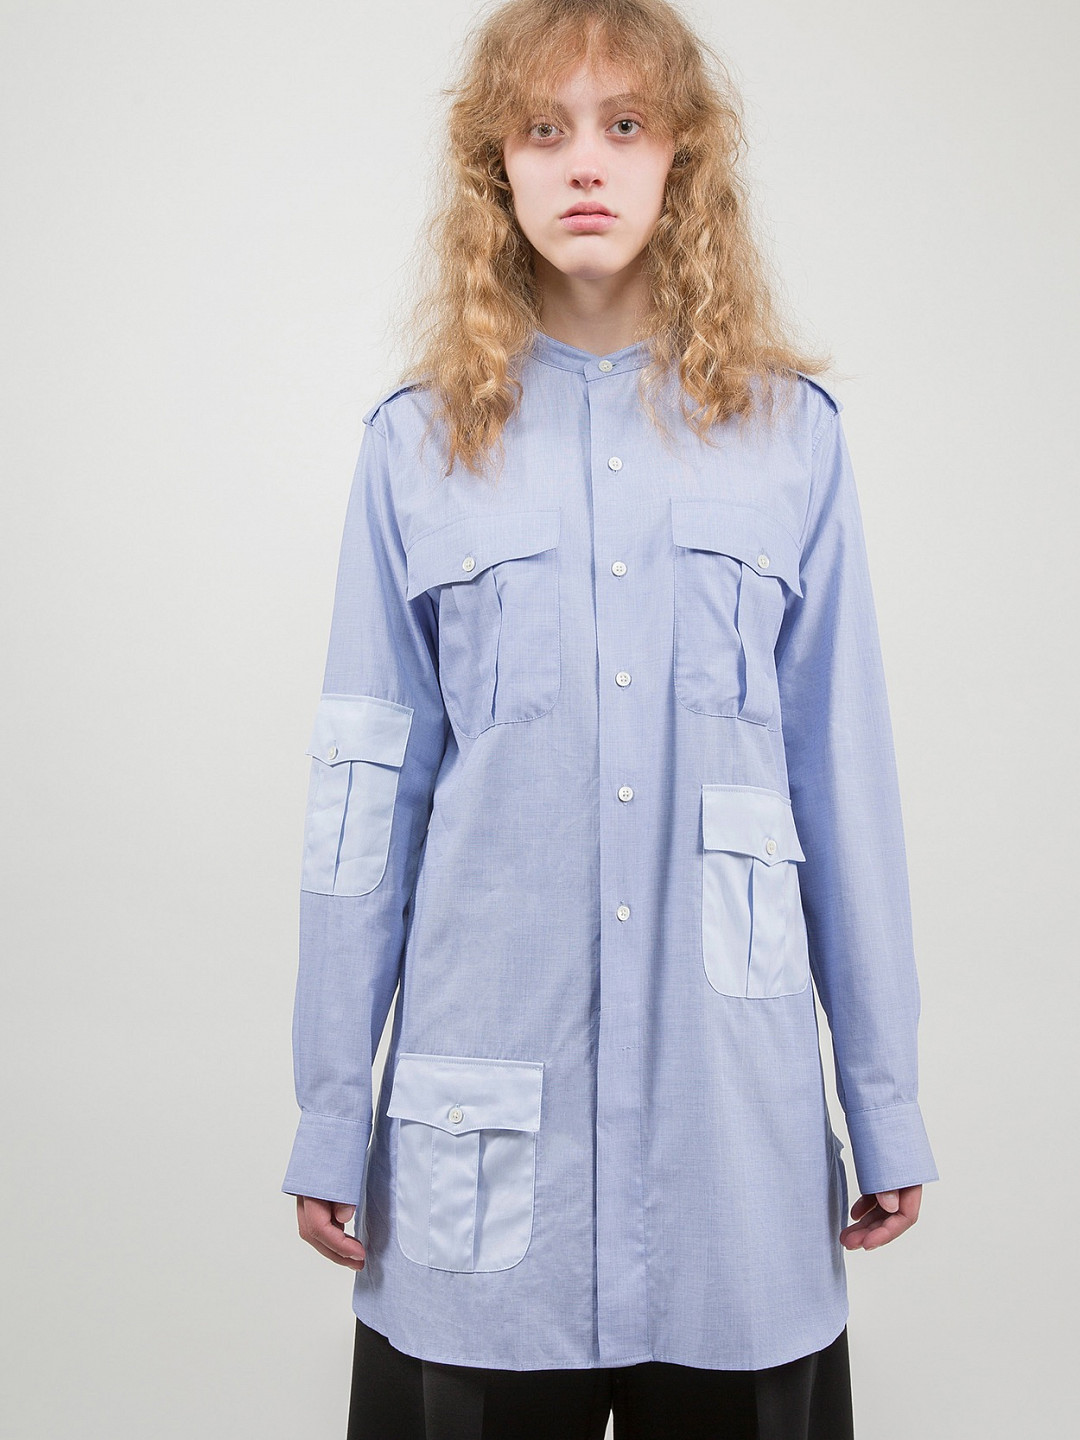 Contrast Workwear Long Shirt